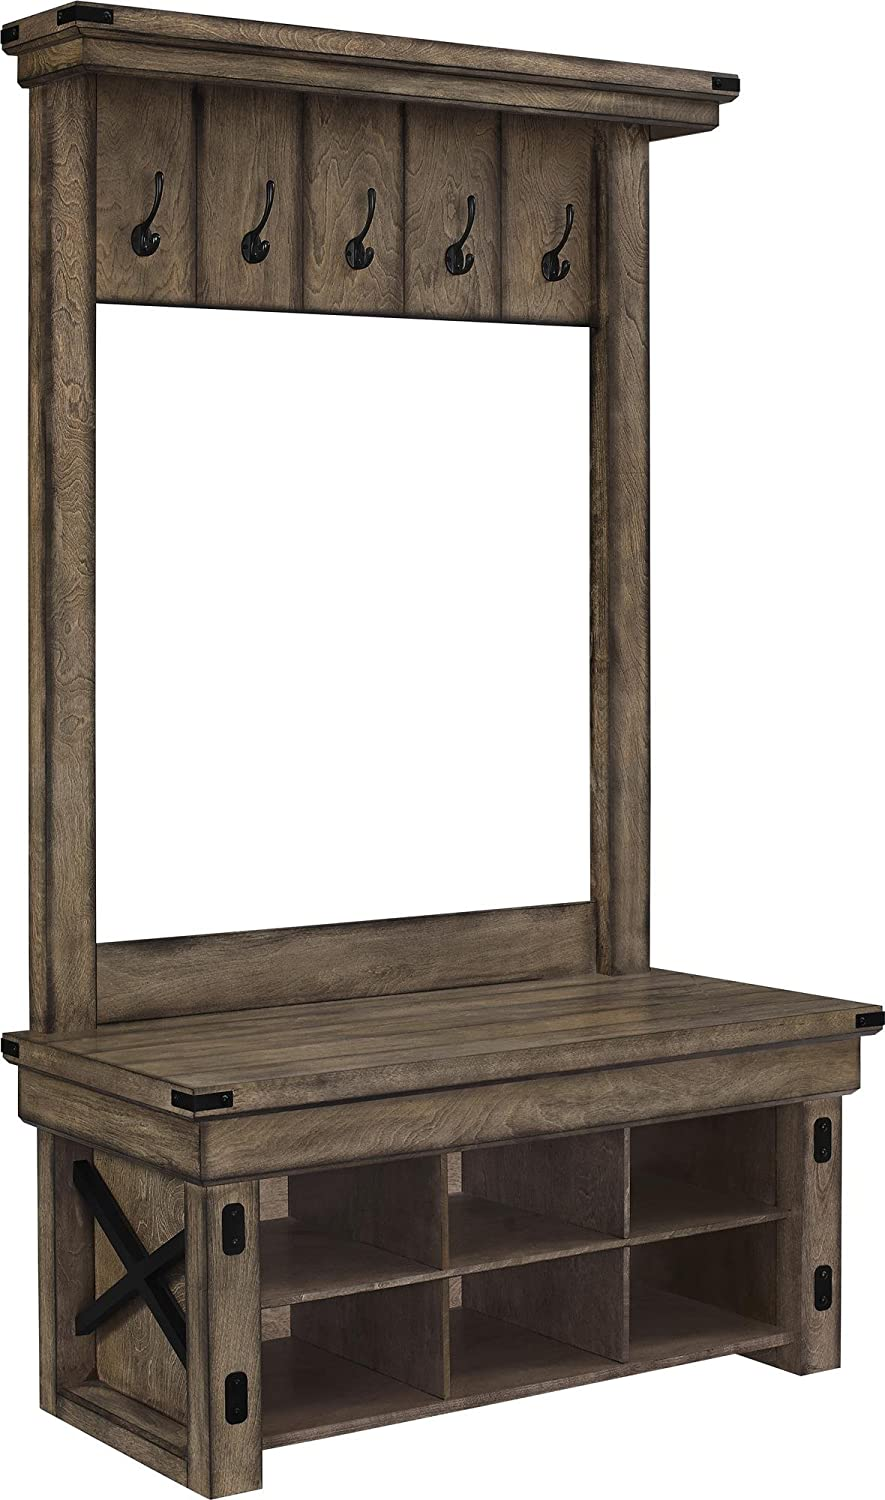 Superieur Amazon.com: Ameriwood Home Wildwood Wood Veneer Entryway Hall Tree W/Storage  Bench, Rustic Gray: Kitchen U0026 Dining